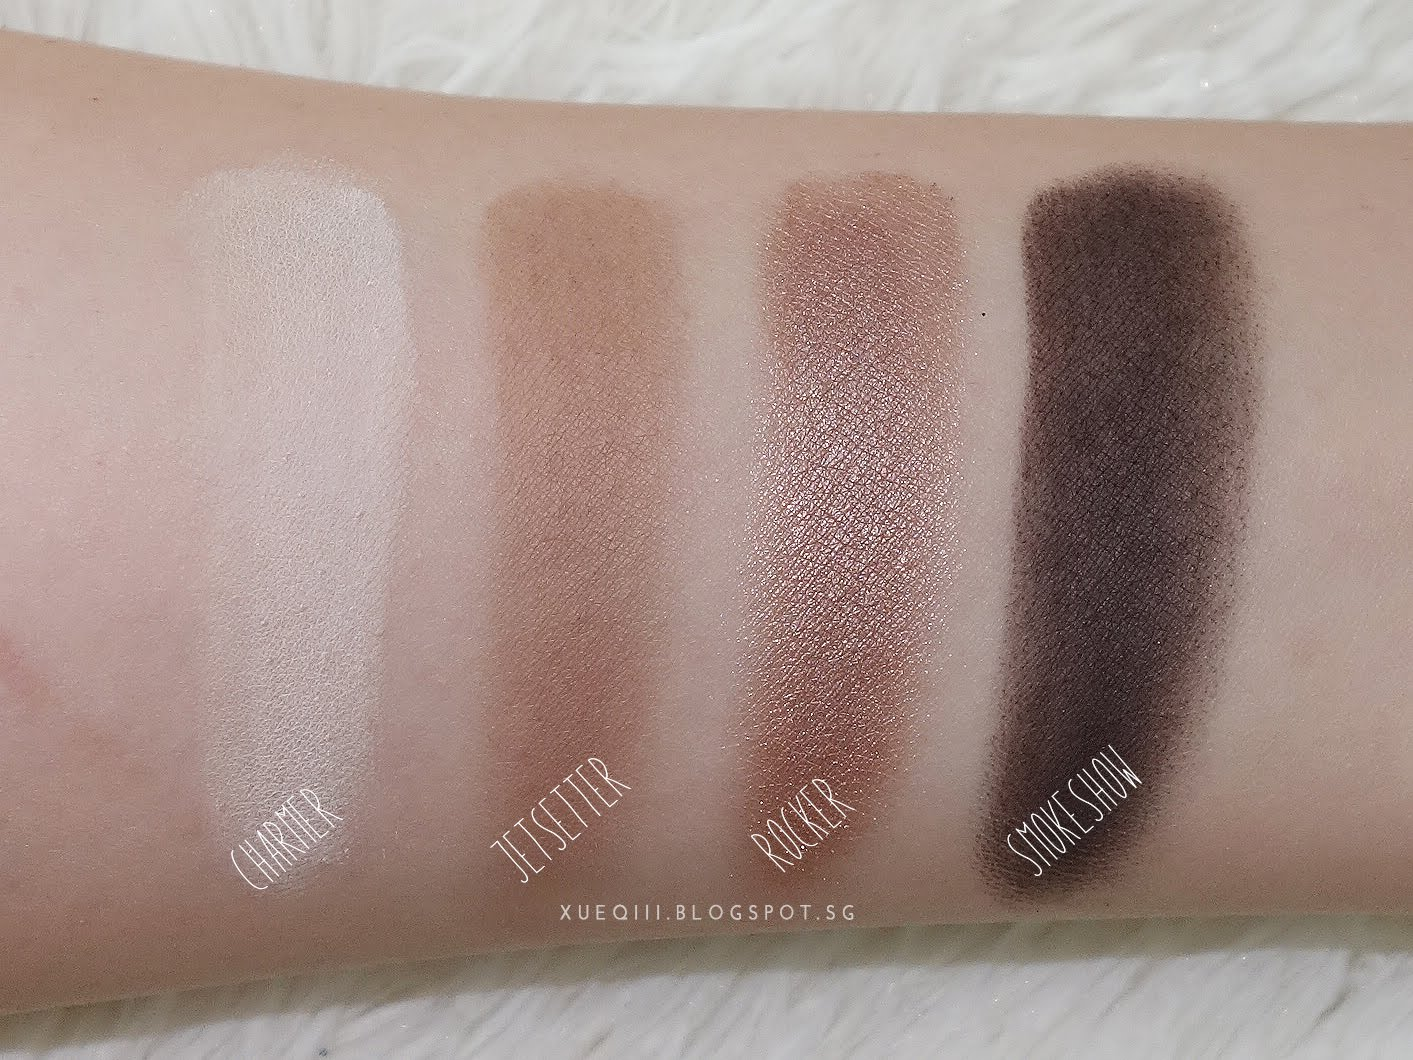 BH Cosmetics x Carli Bybel Deluxe Edition Palette by BH Cosmetics #19